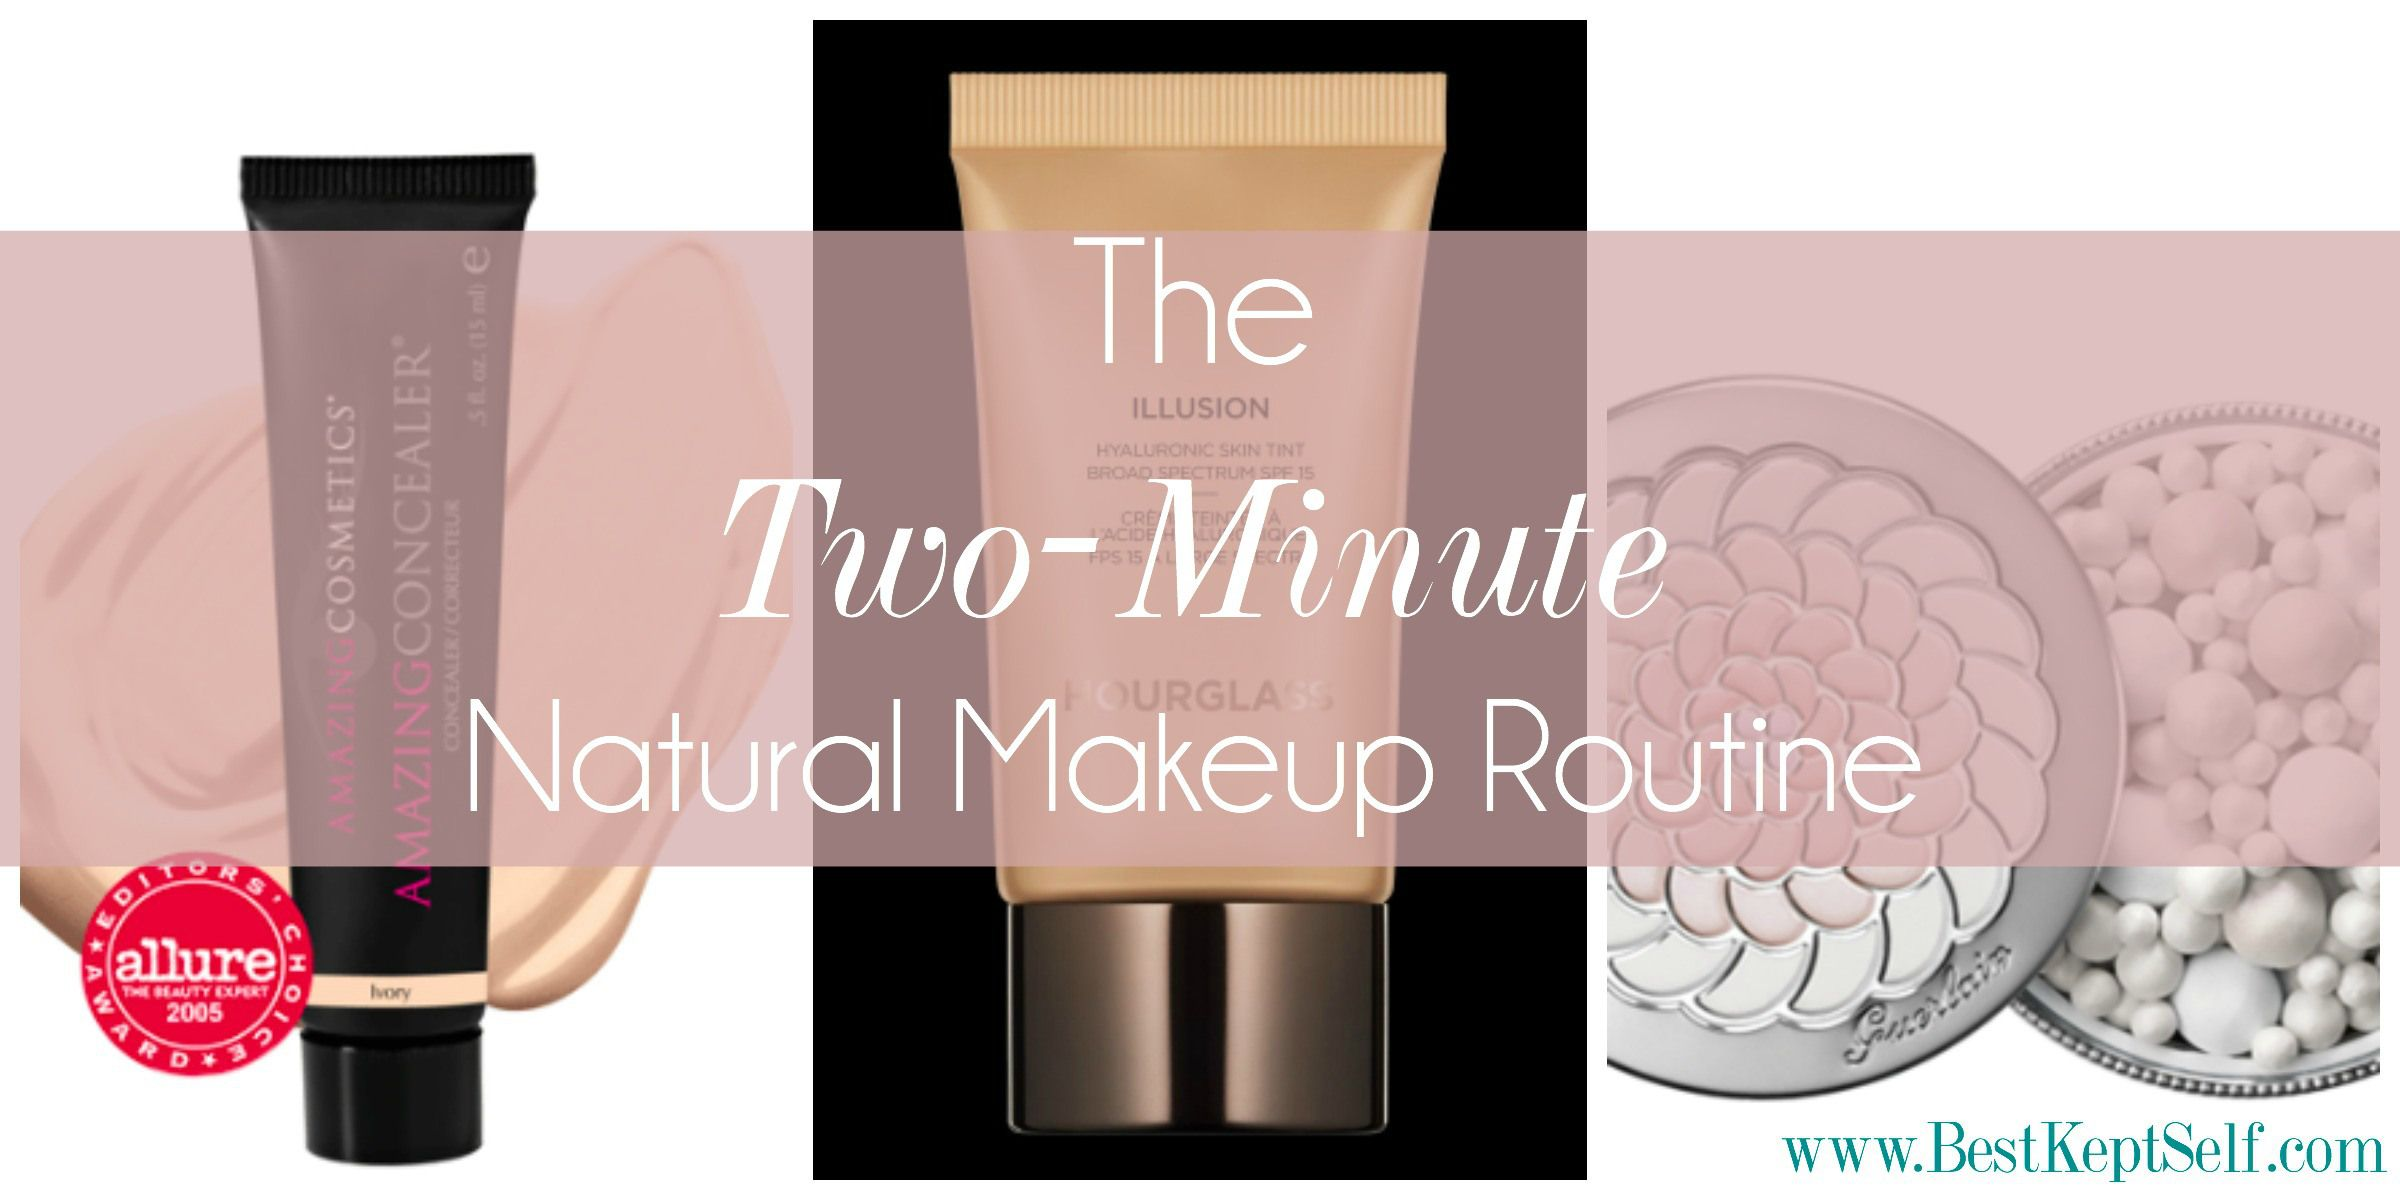 The TwoMinute Natural Makeup Routine Makeup routine